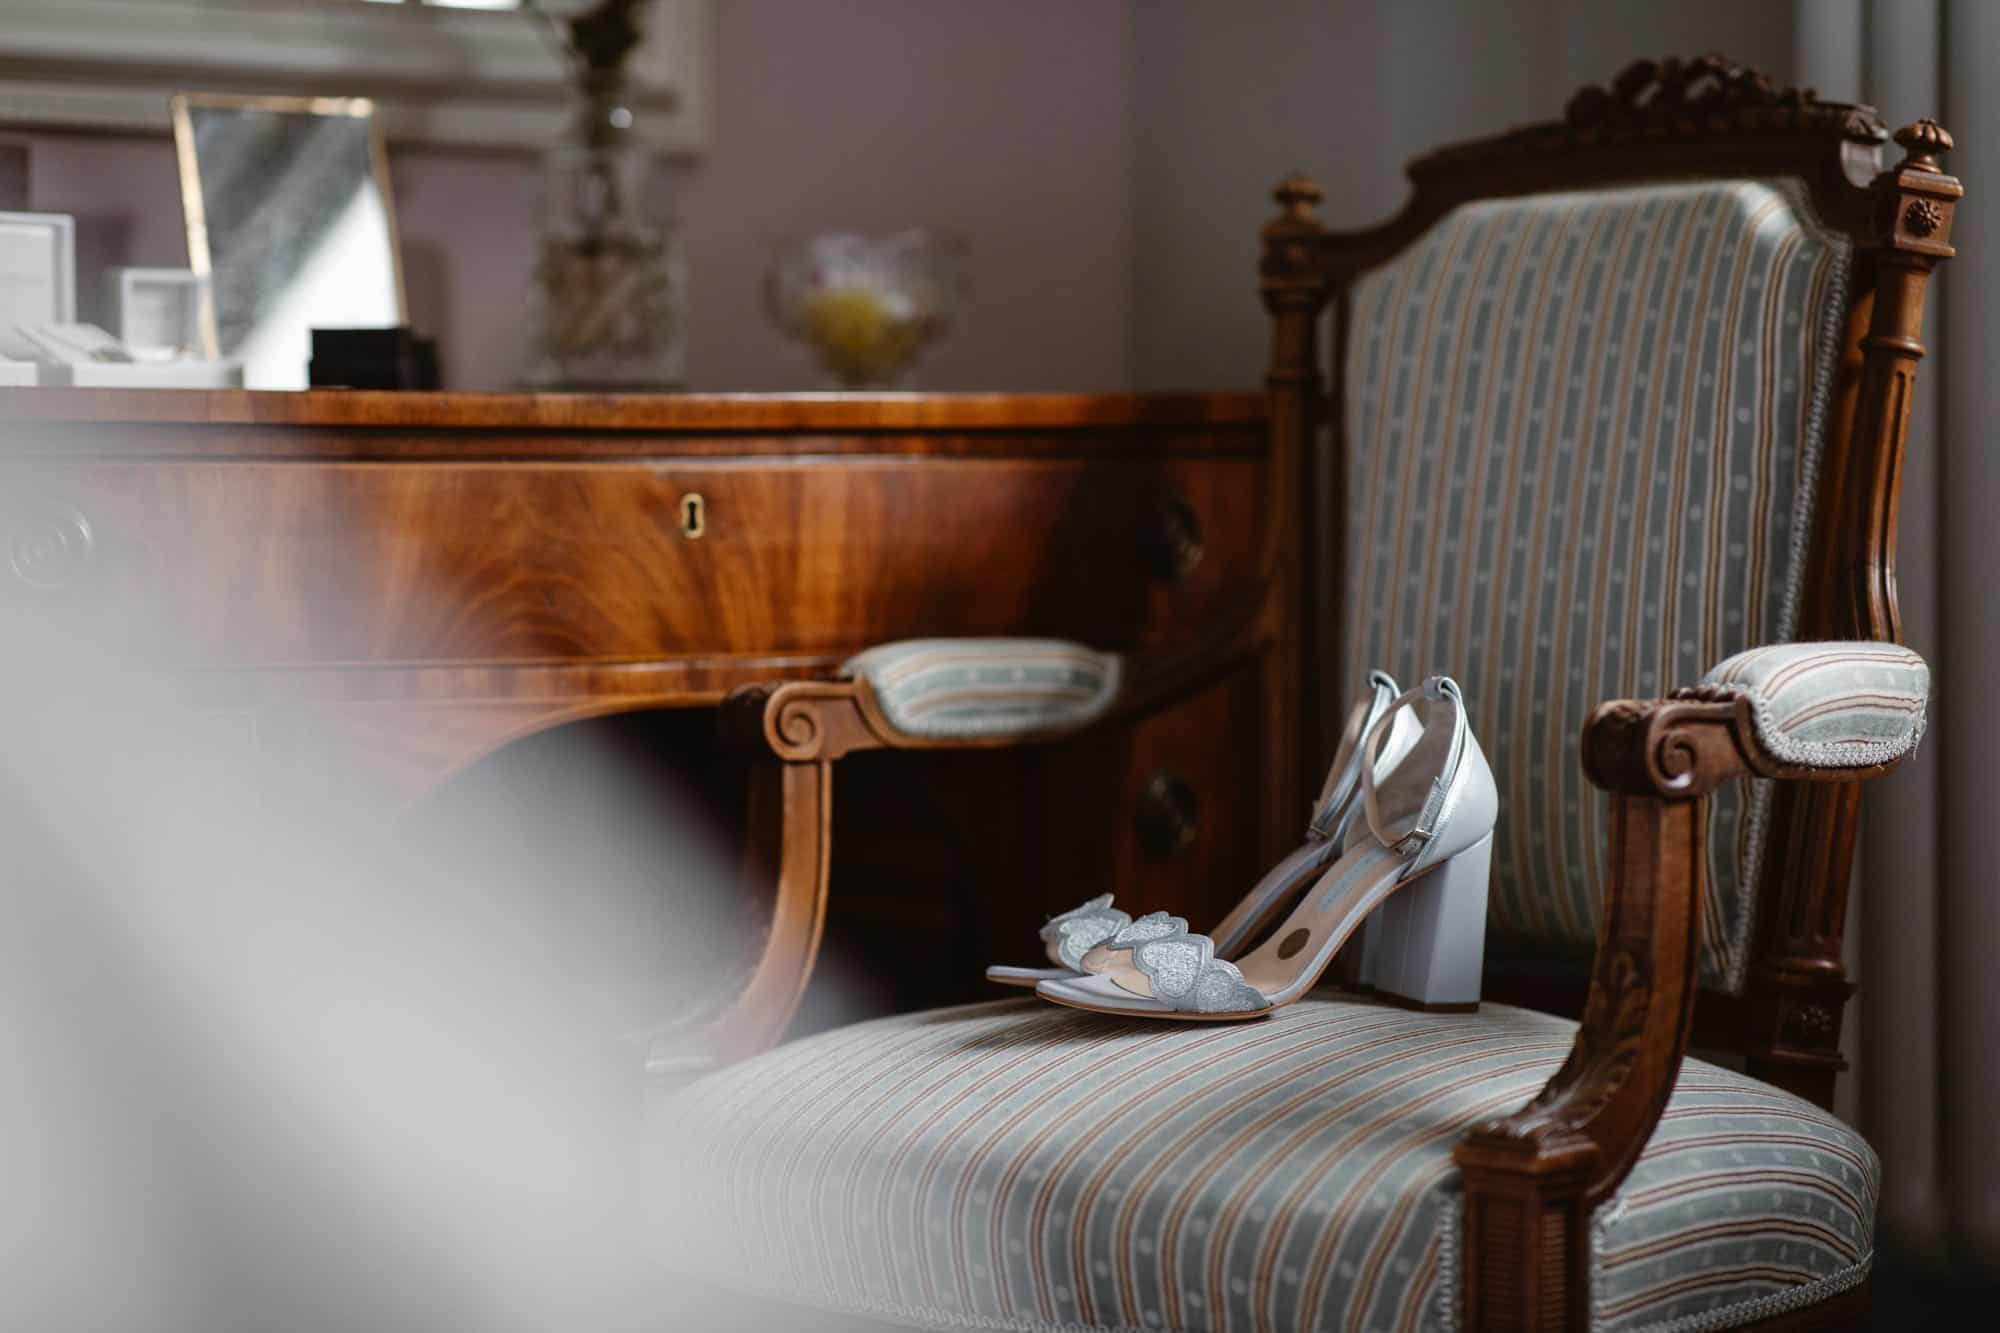 Wedding shoes on a chair awaiting the bride